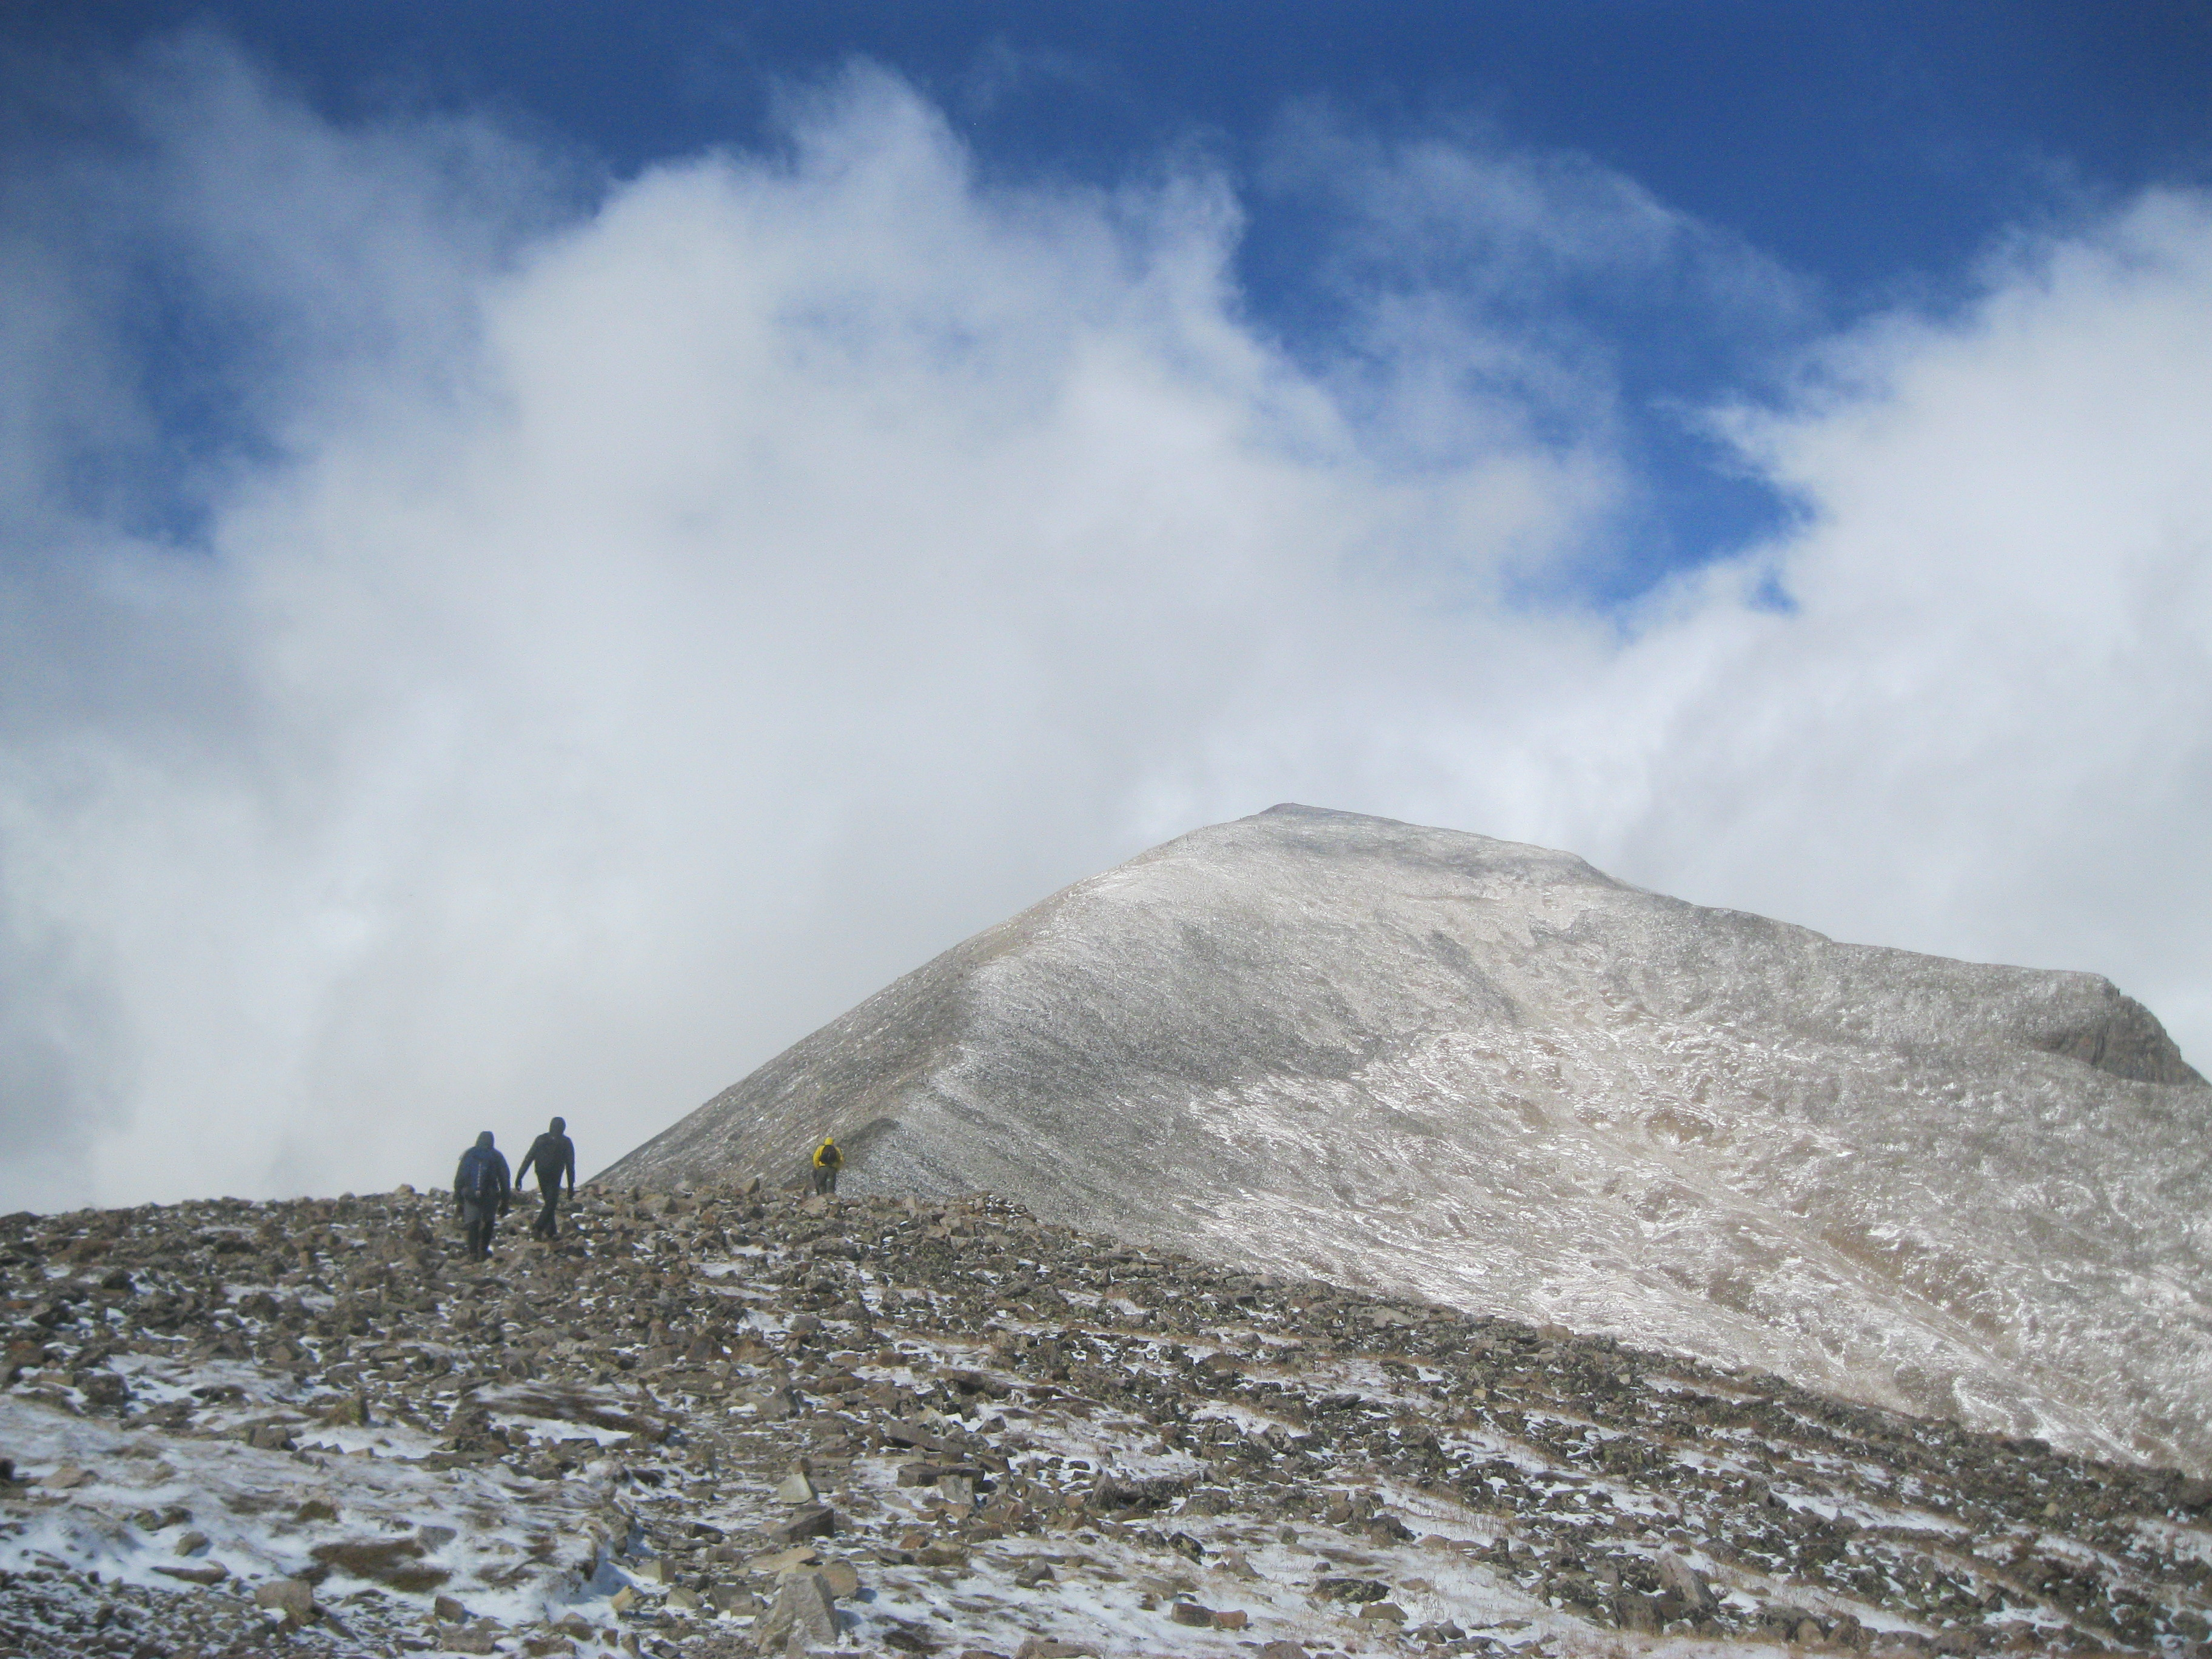 The BoulderCAST team hiking Quandary Peak this past Saturday with fresh snow